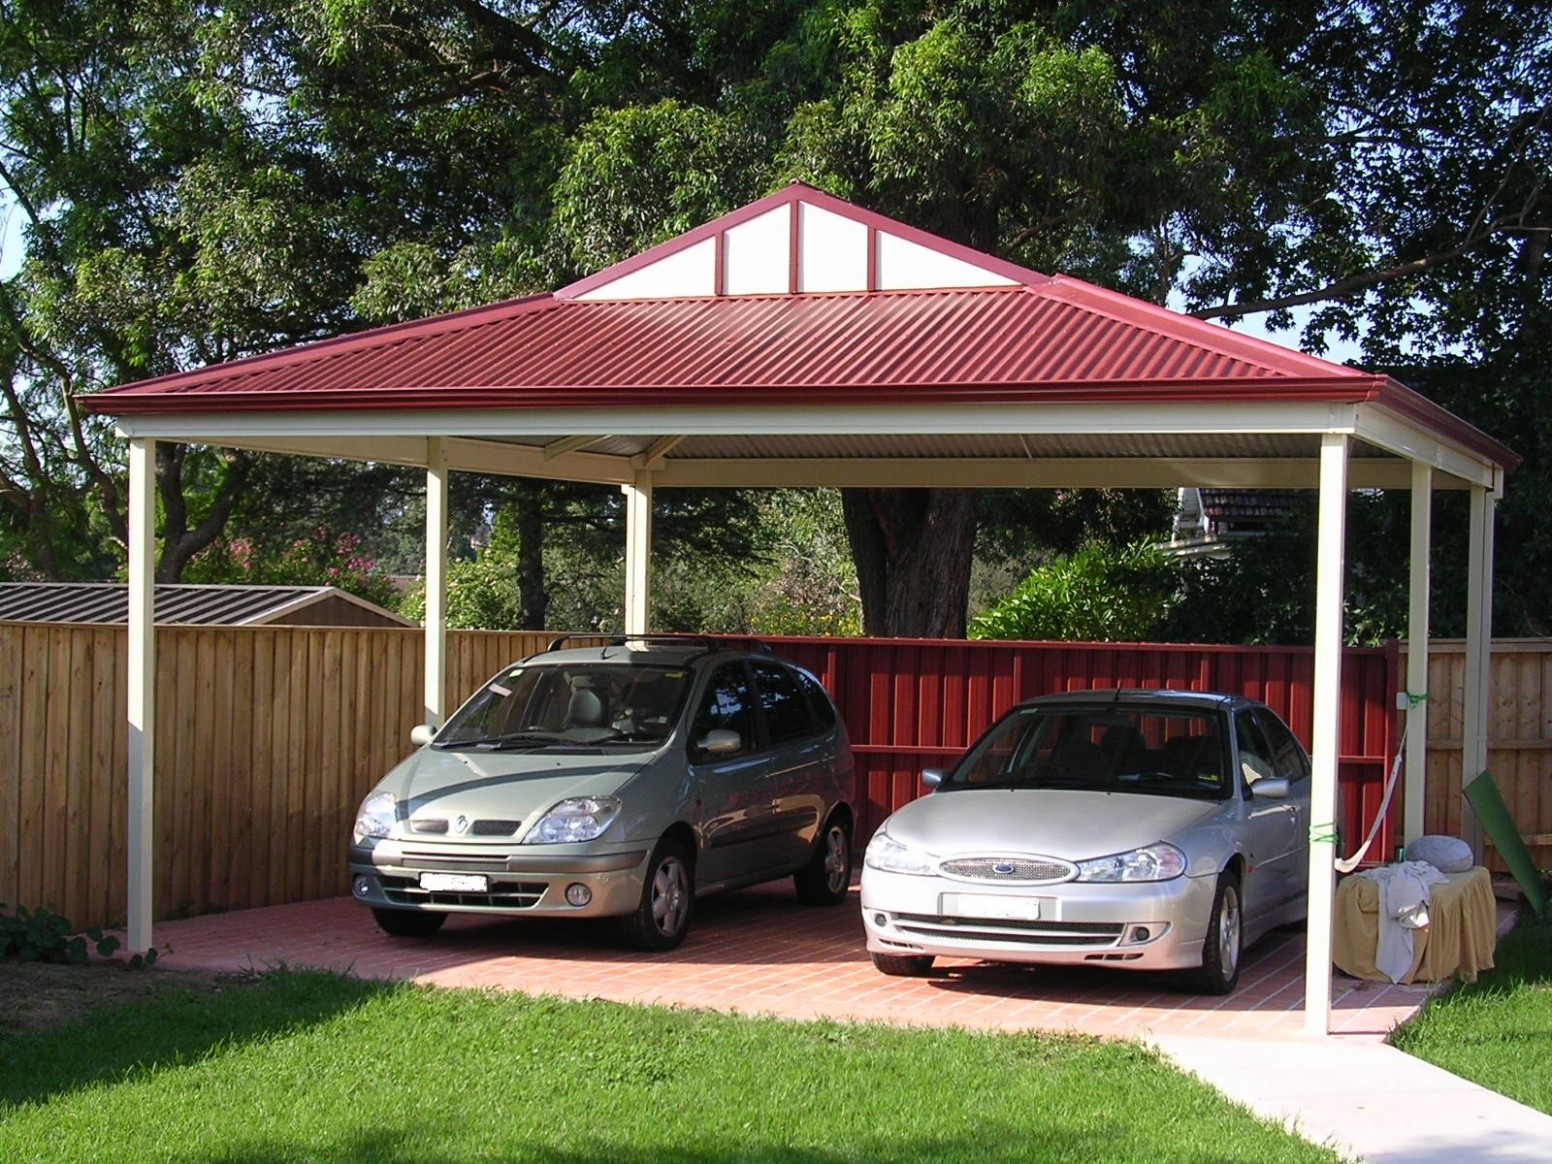 17 Benefits Of High End Carports That May Change Your Perspective | high end carports